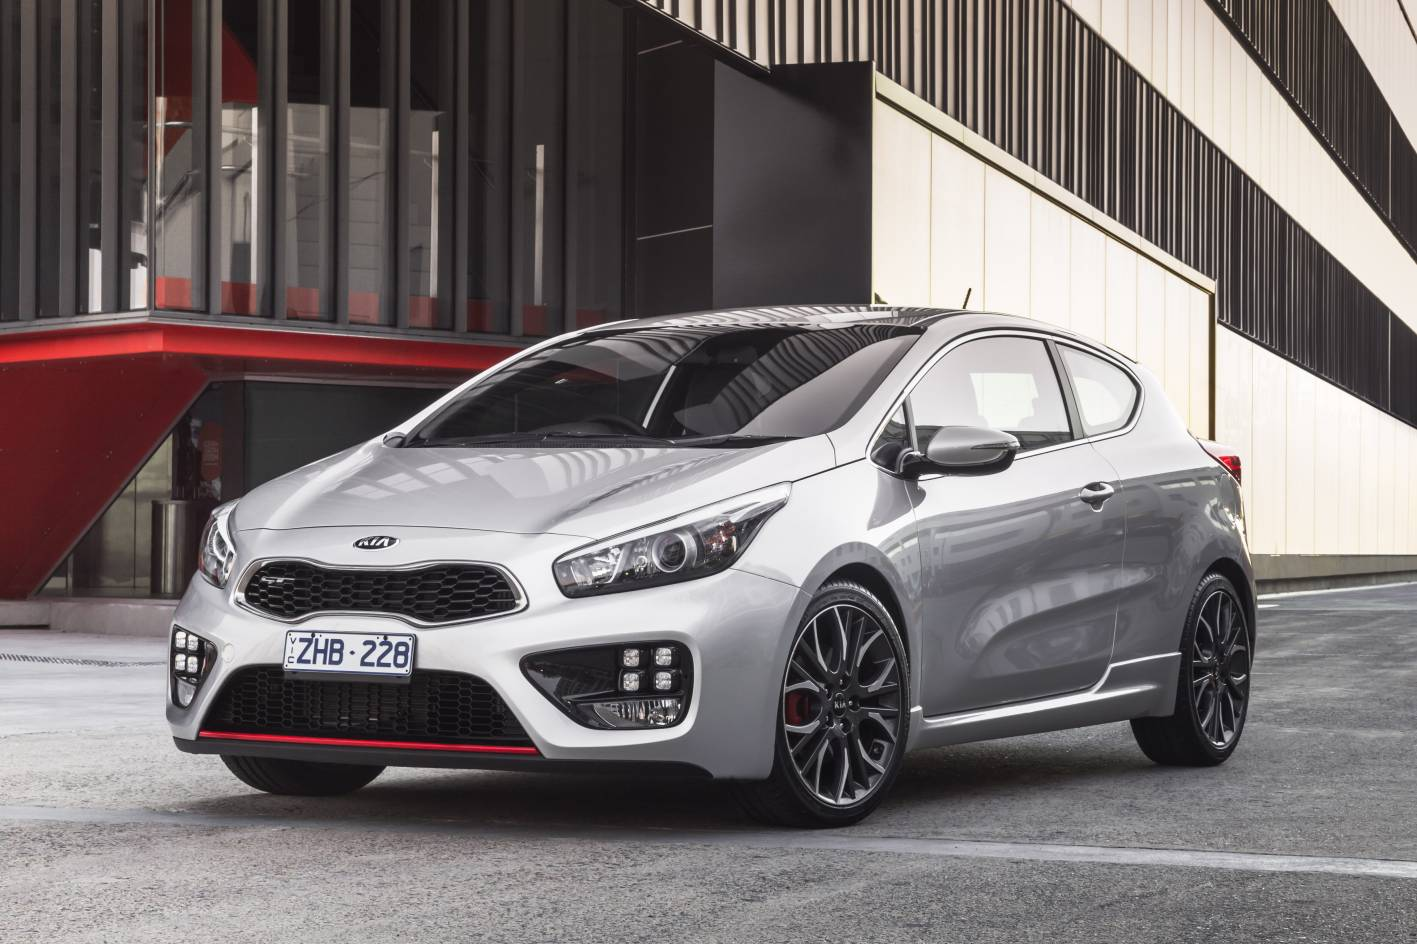 kia pro cee 39 d gt on sale from 29 990 kia 39 s first hot hatch performancedrive. Black Bedroom Furniture Sets. Home Design Ideas